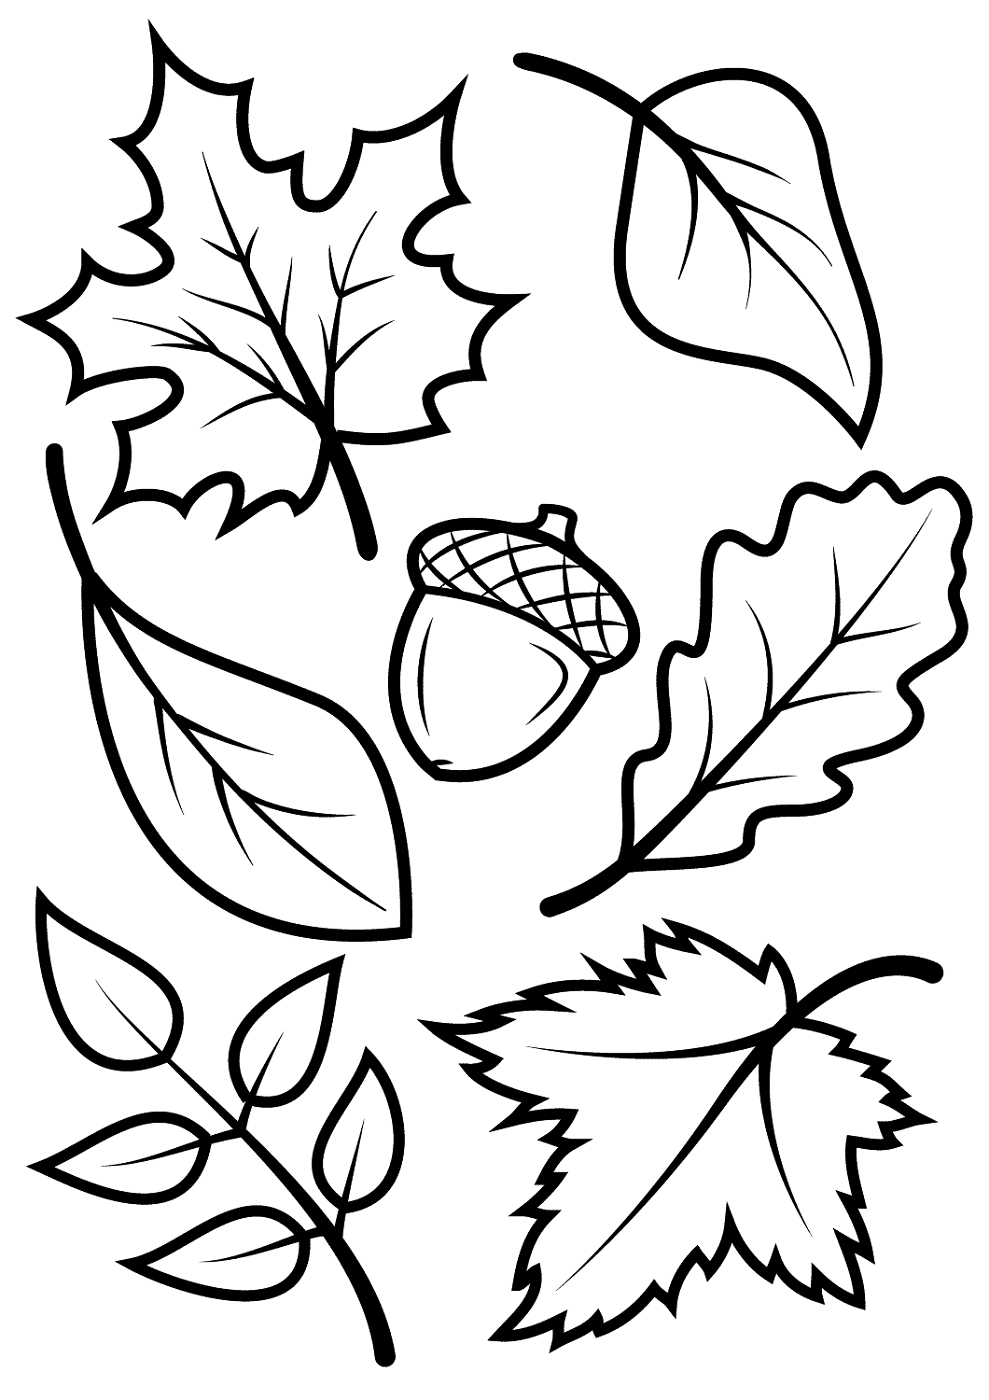 leaf coloring pictures